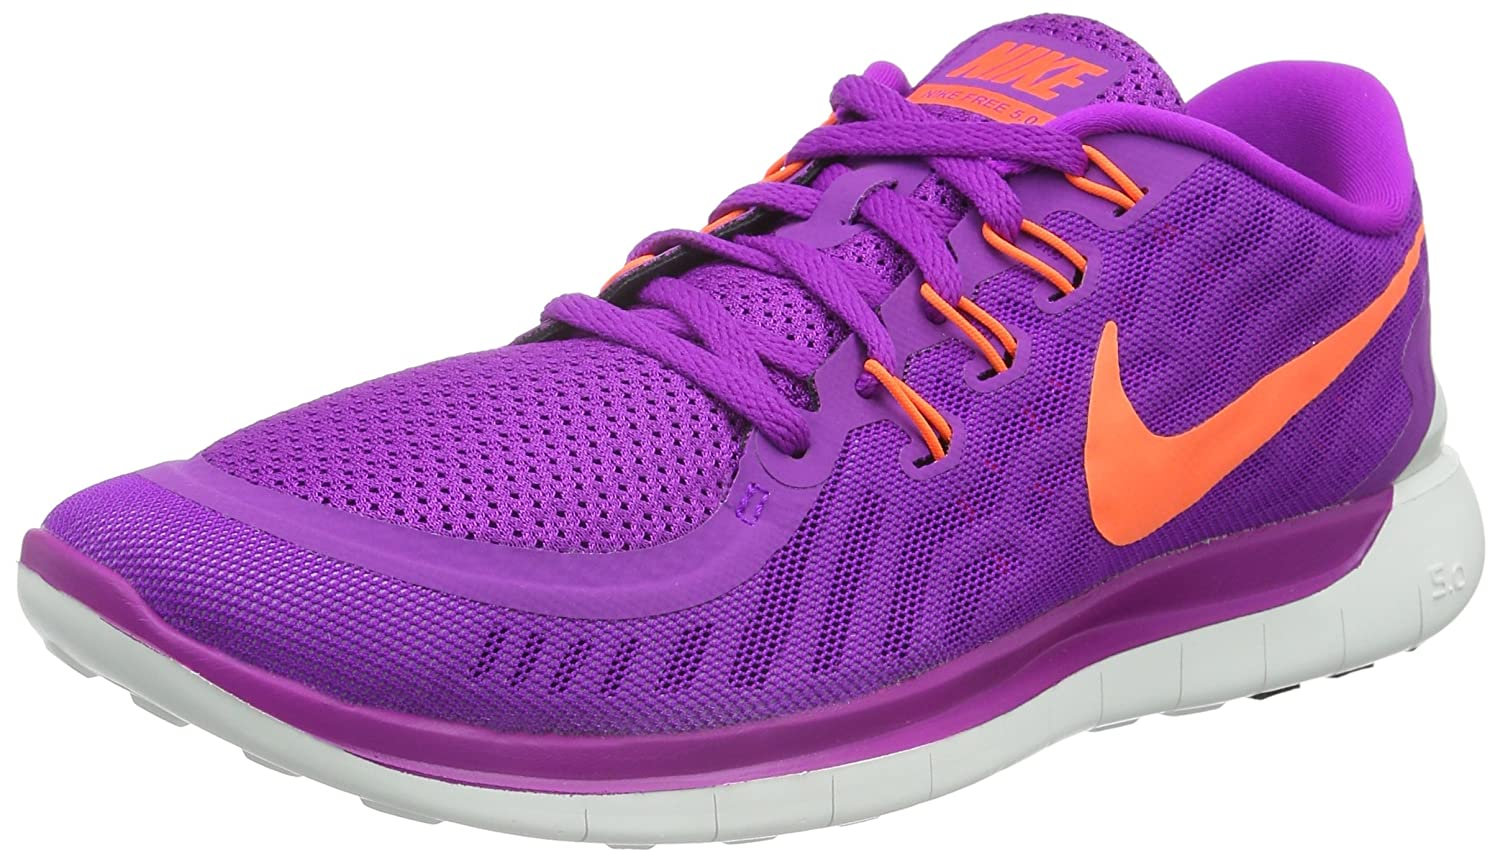 Nike Women's Free Running Shoe B00V43AQIS 7 B(M) US|vivid purple/black/fuchsia glow/hyper orange